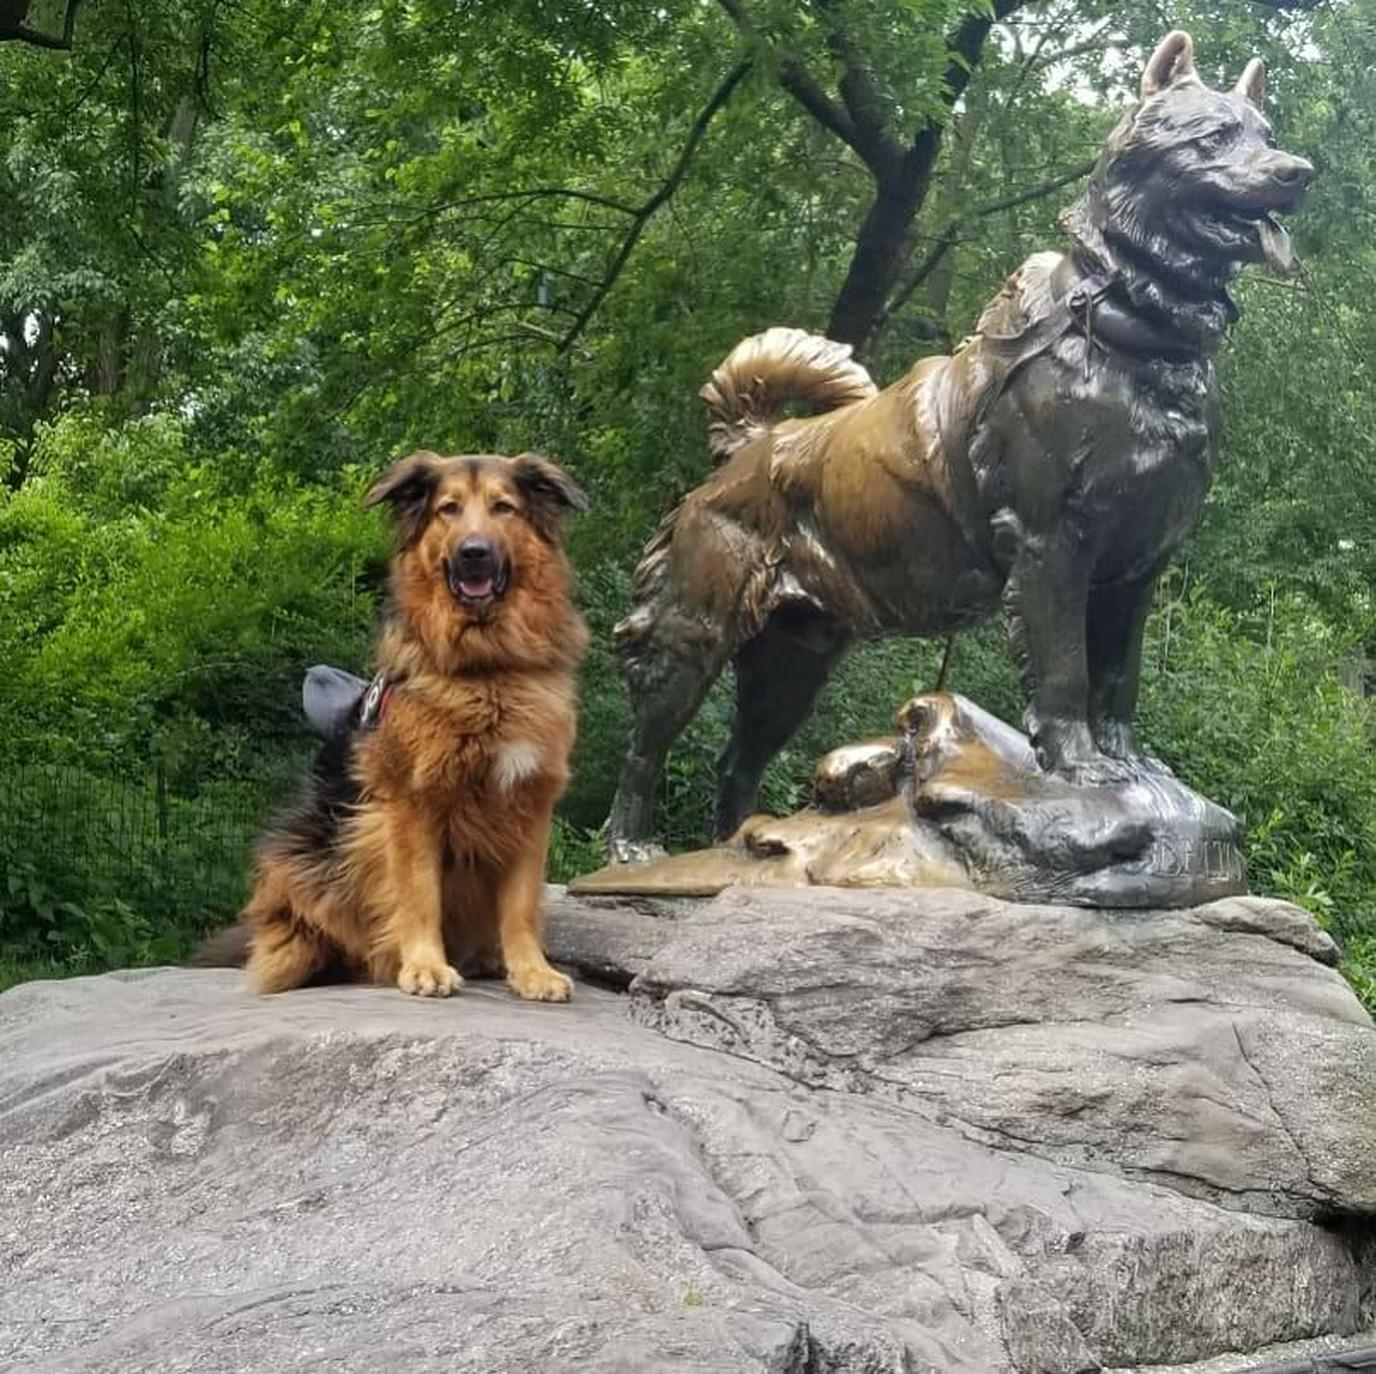 A dog poses next to a sculpture of Balto in Central Park.